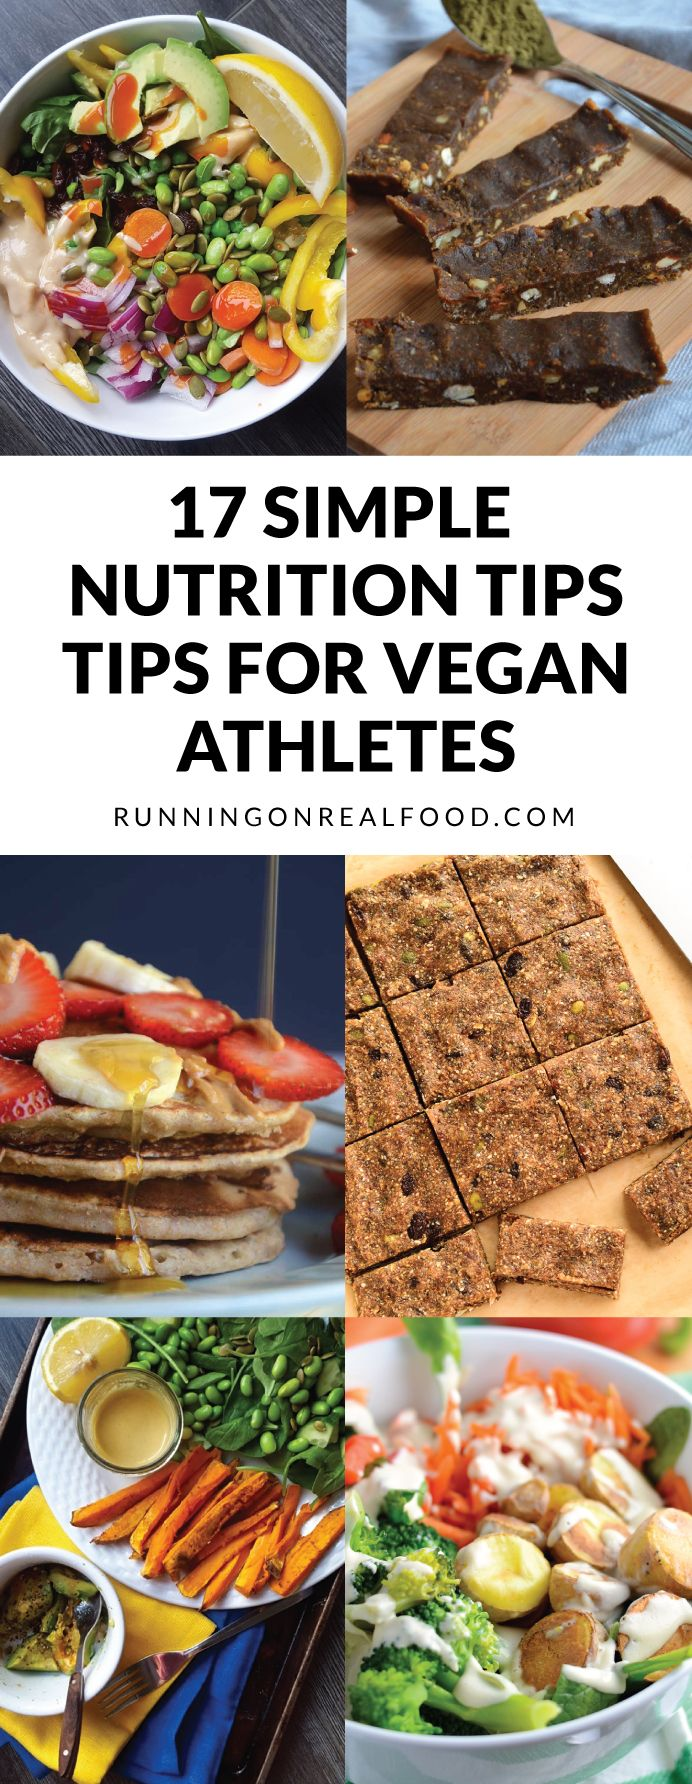 17 Simple Nutrition Tips For Vegan Athletes Simple Nutrition Nutrition Recipes Plant Based Eating